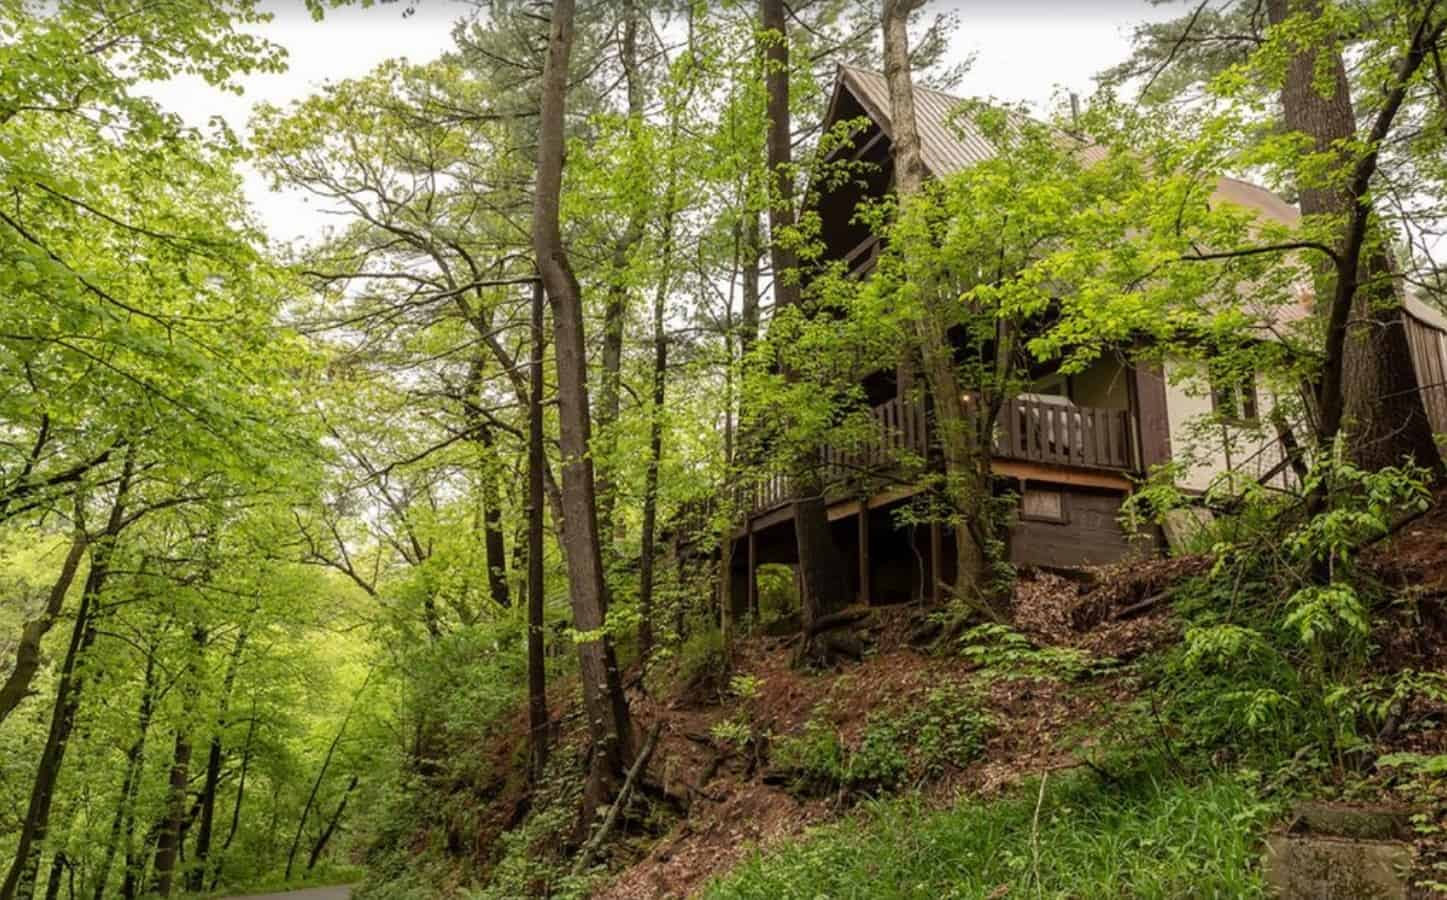 12 Best Cabin Rentals Near Wisconsin Dells Wi How to get from wisconsin dells to kenosha by train, bus or car. best cabin rentals near wisconsin dells wi